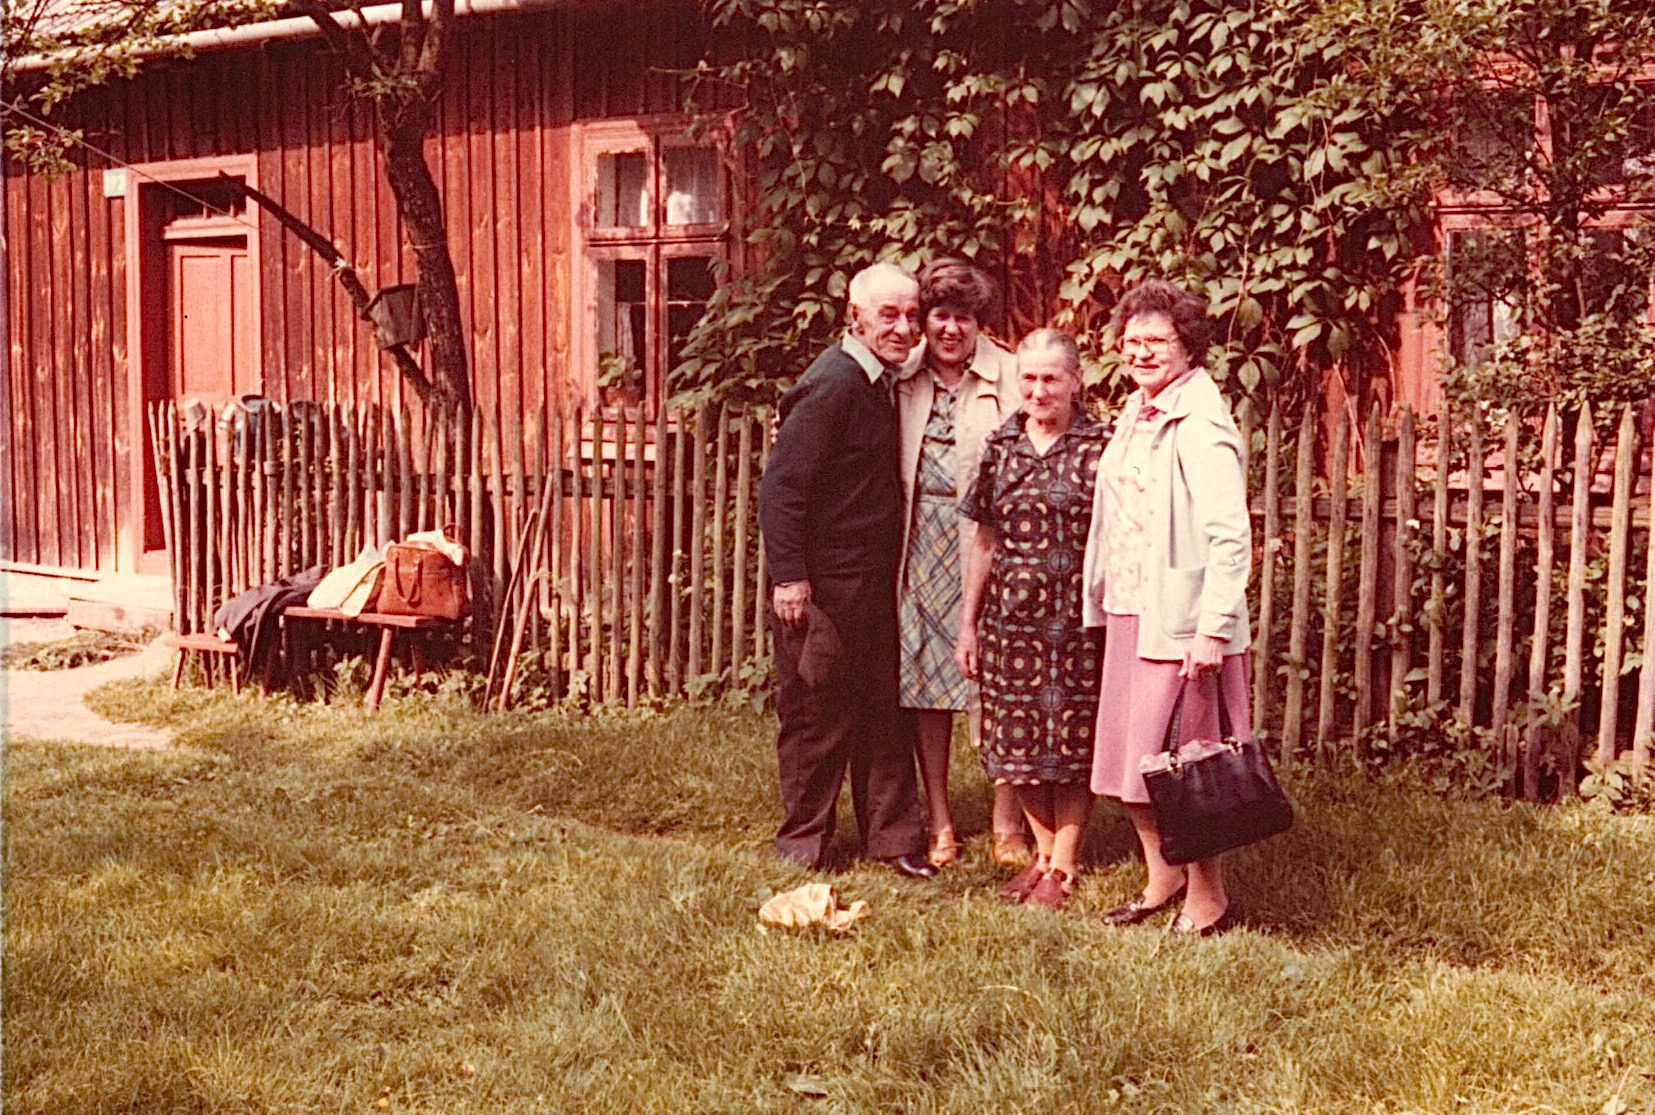 Walter, Eleanor, Julia, & Mayme.  Walter is Eleanor & Mayme's uncle.  Two months before we arrived Walter received a transistor radio as a present. House has no electricity or heat, just a stove. Note the fir to wipe your feet at the door.